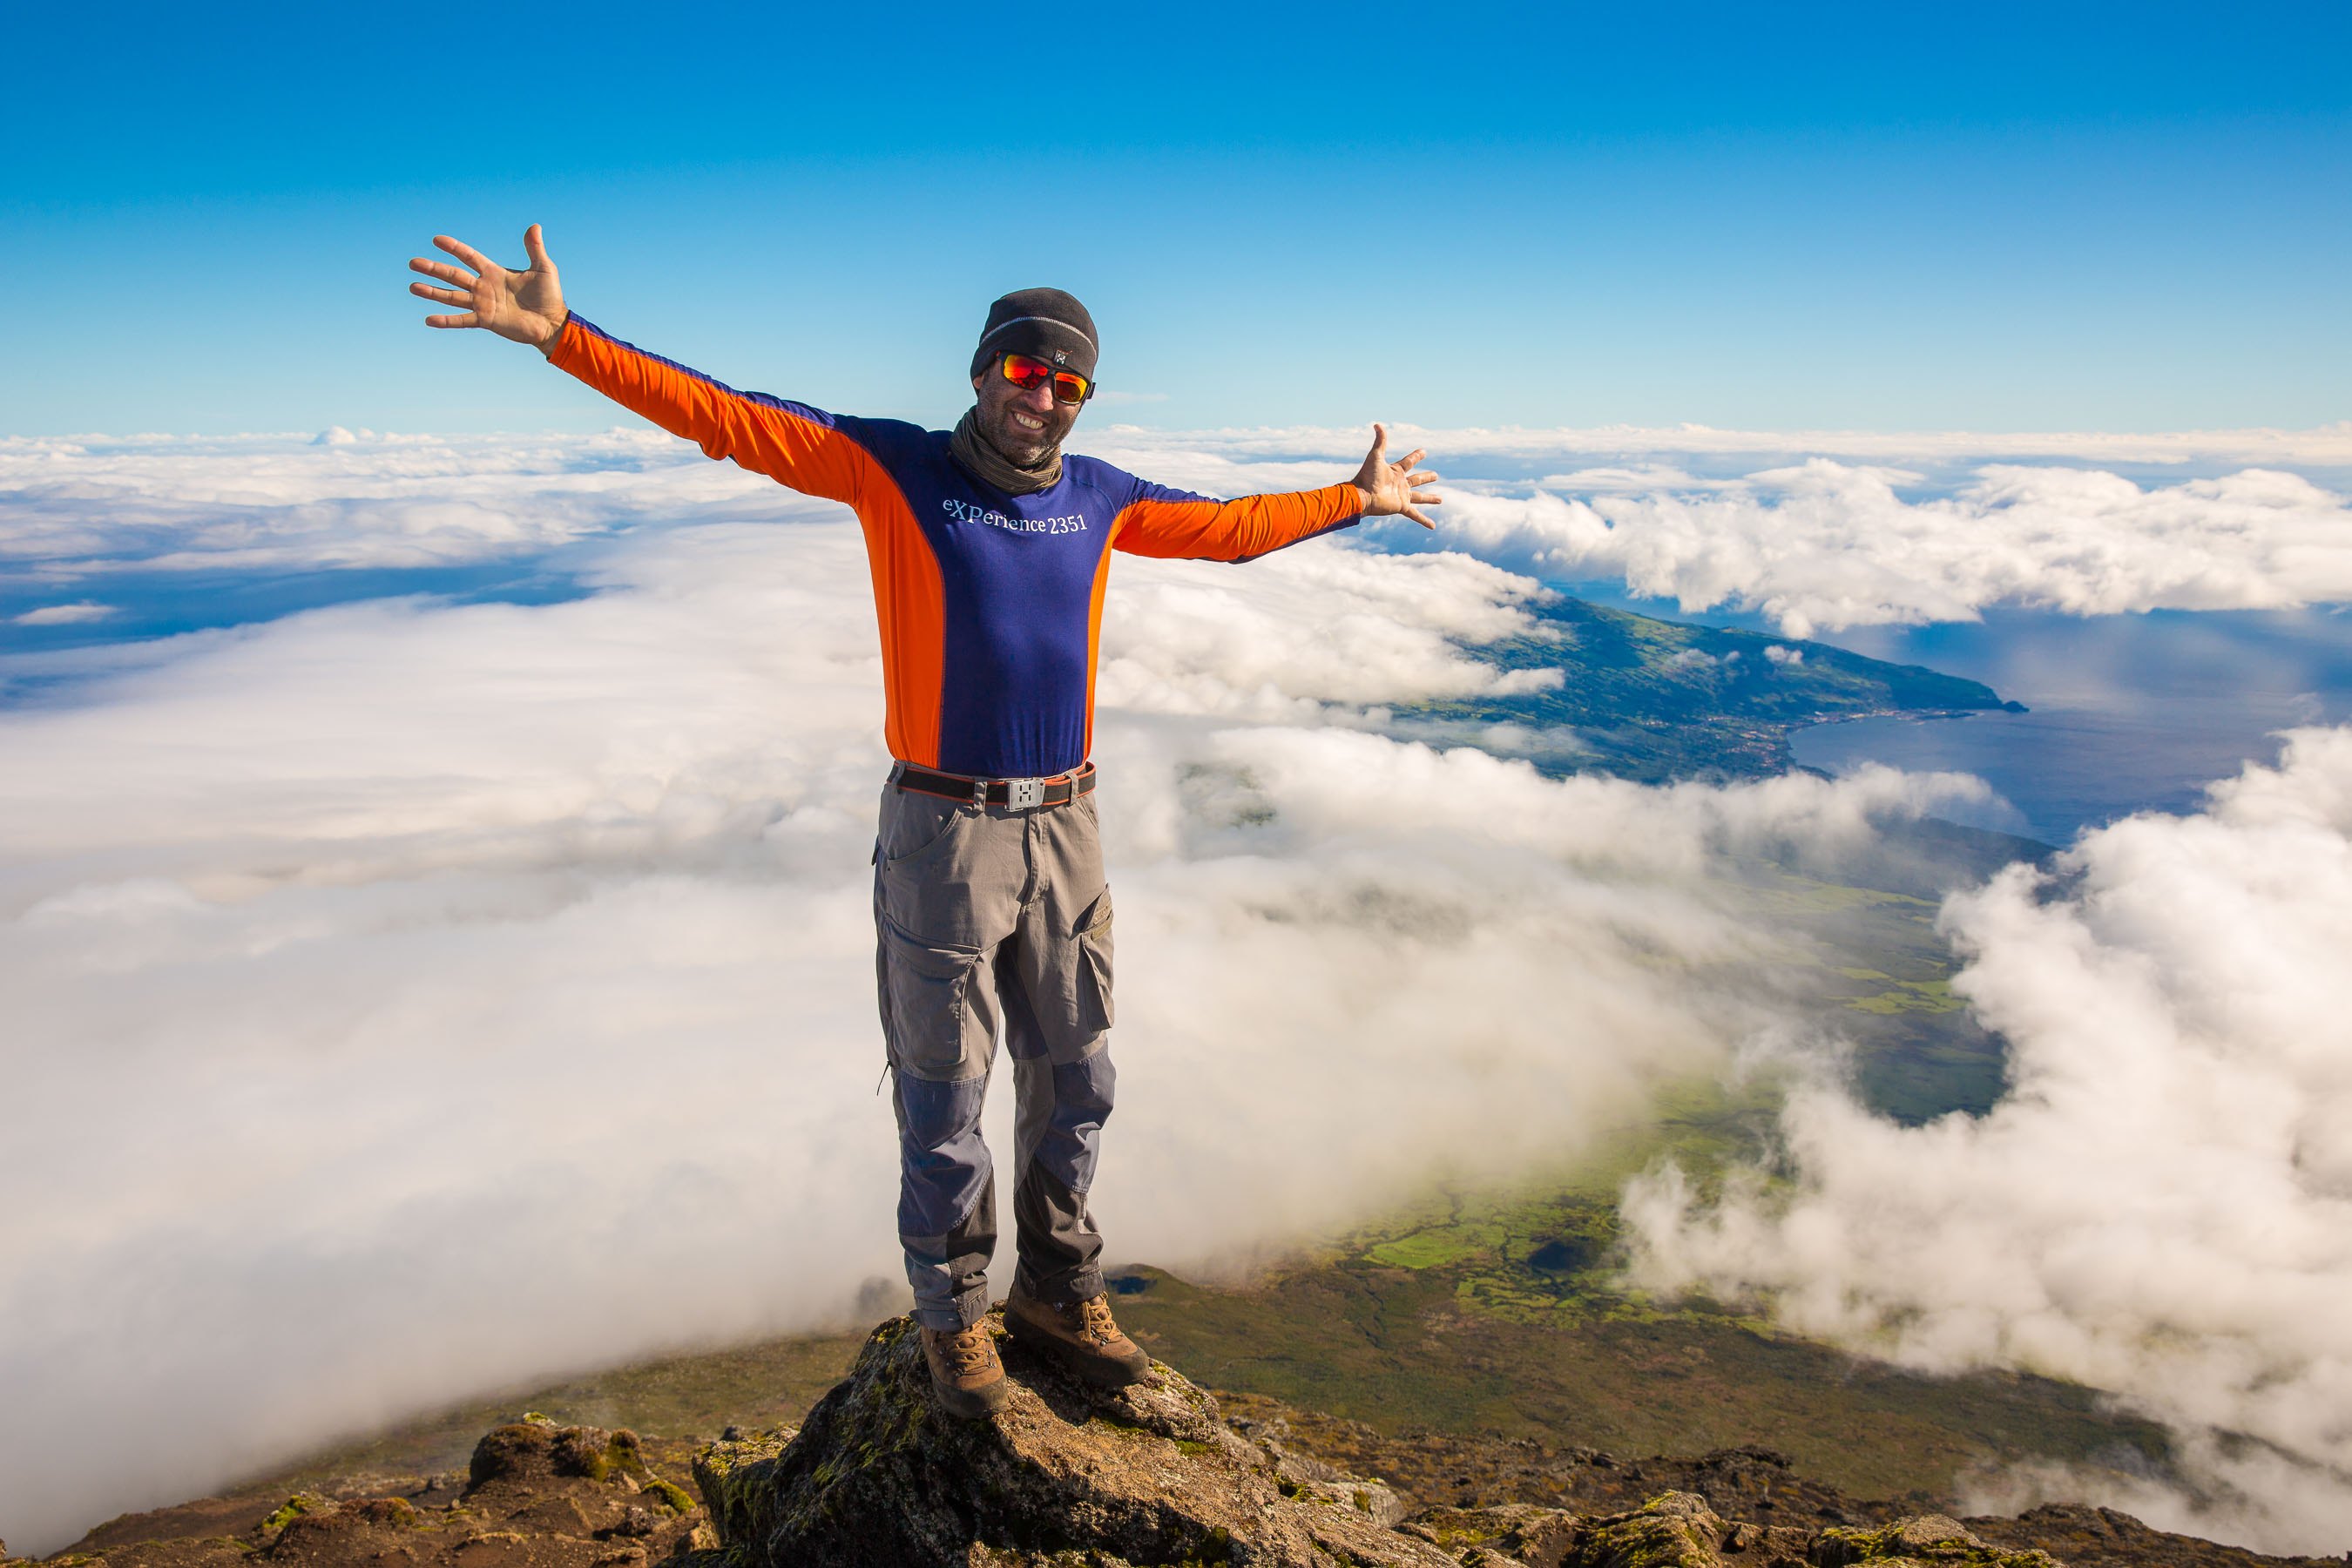 Portrait of guide on Mount Pico summit, Azores